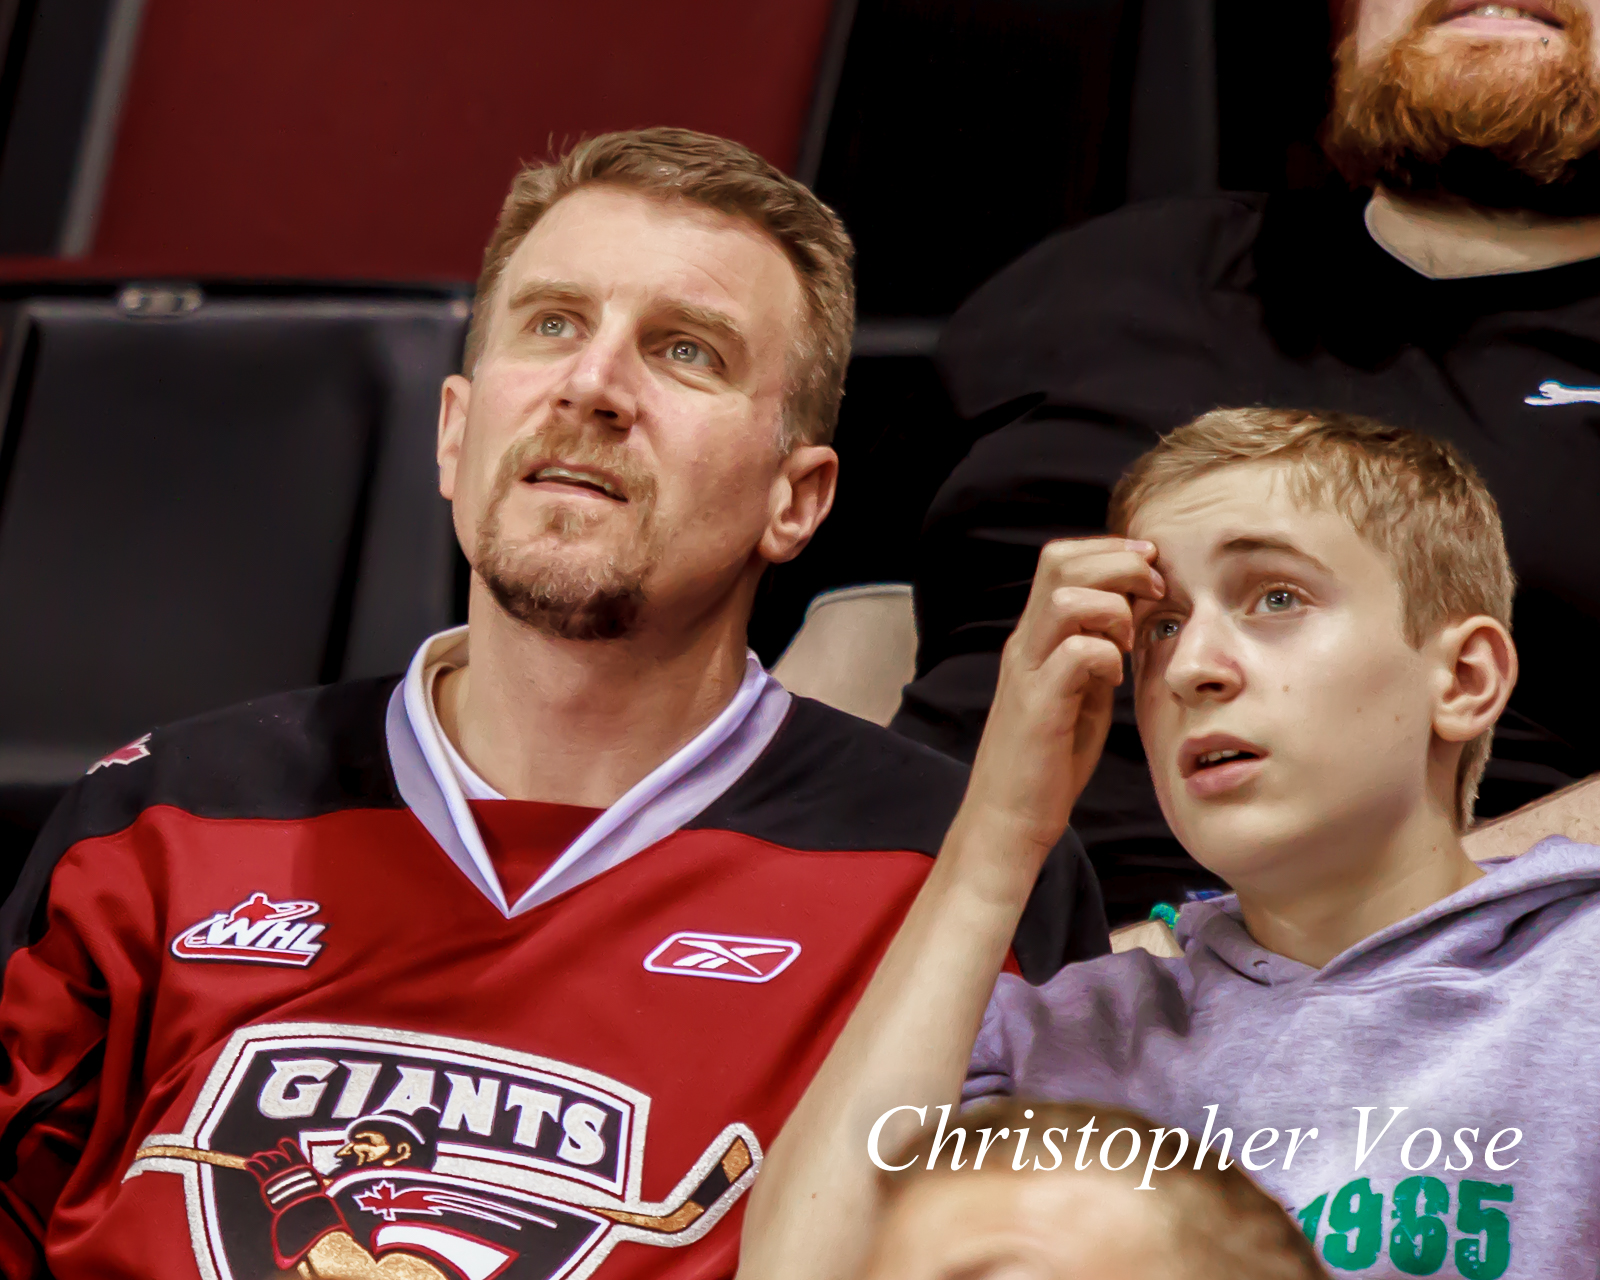 2014-09-26 Vancouver Giants Supporters 1.jpg